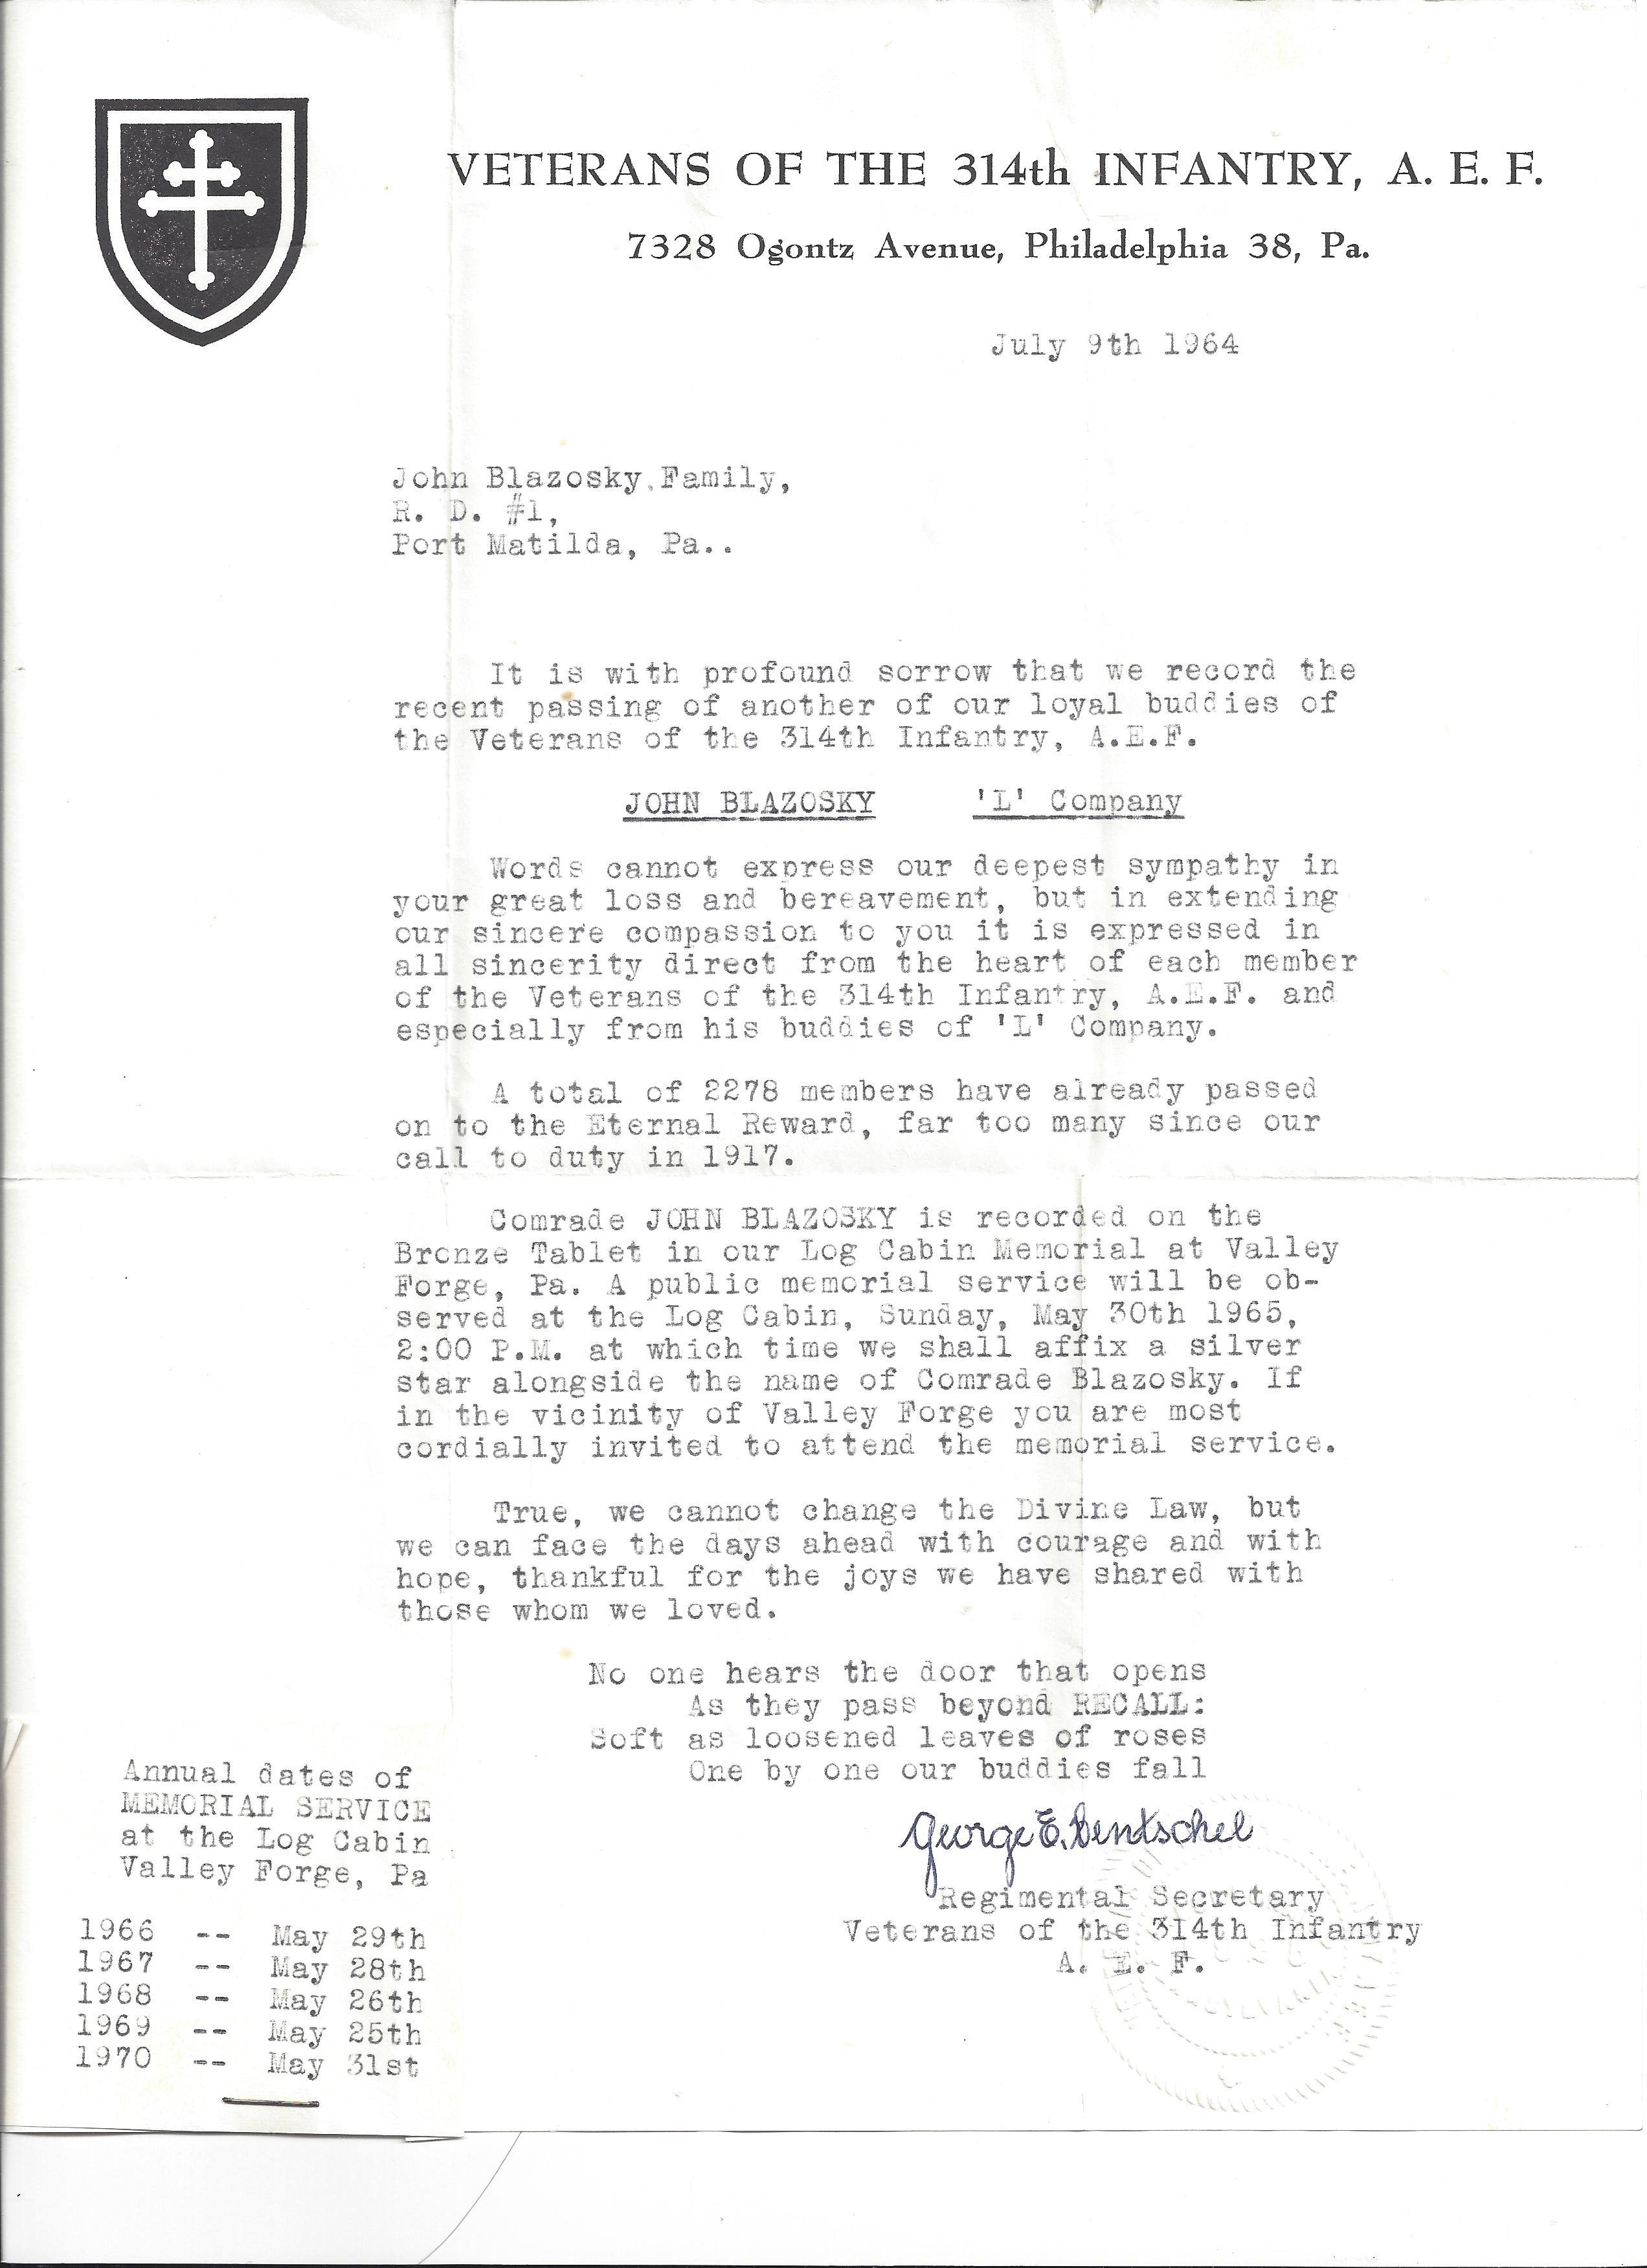 John Blazosky Condolence Letter from George Hentschel 1964